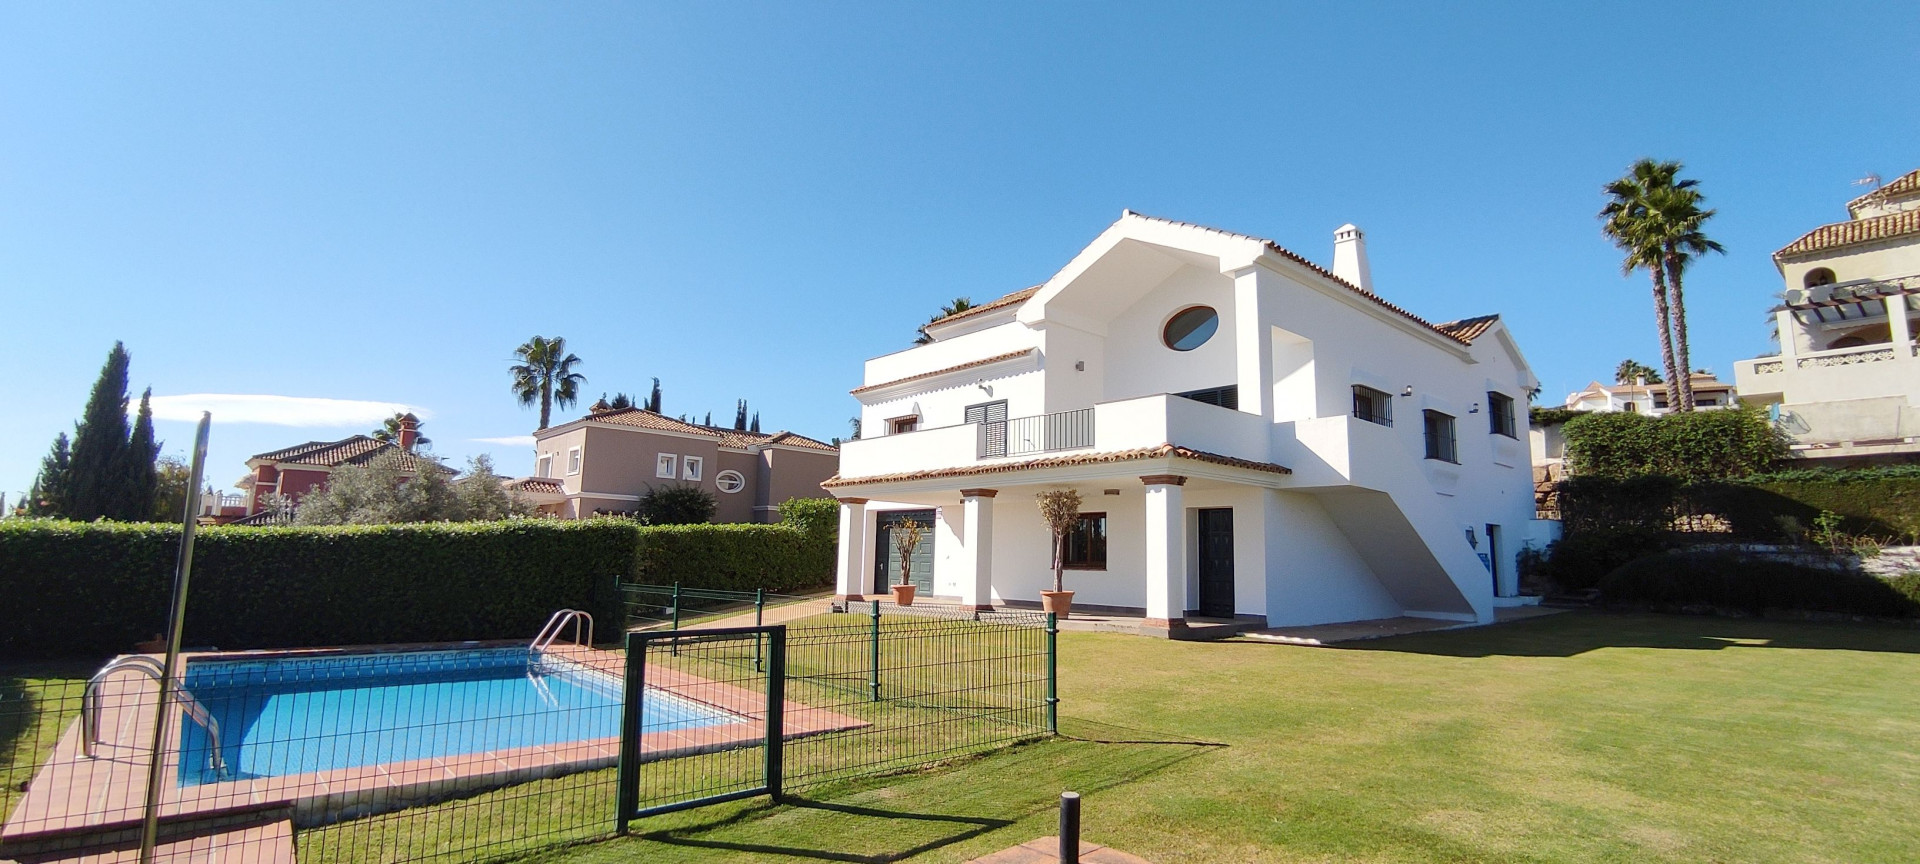 Well designed family home with an elegant beautiful interior including stunning seaviews